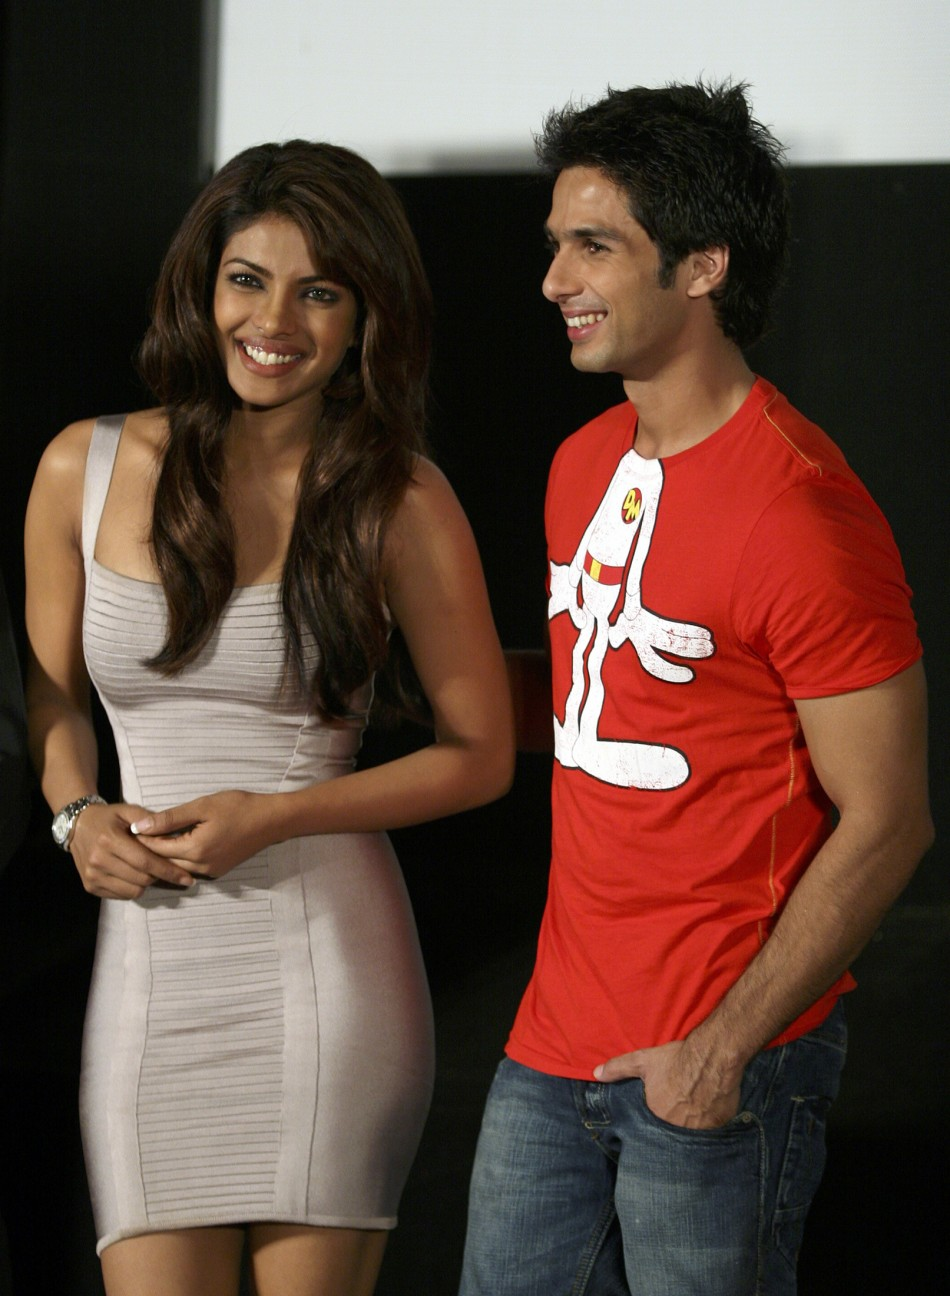 priyanka chopra and shahid kapoor dating 2013